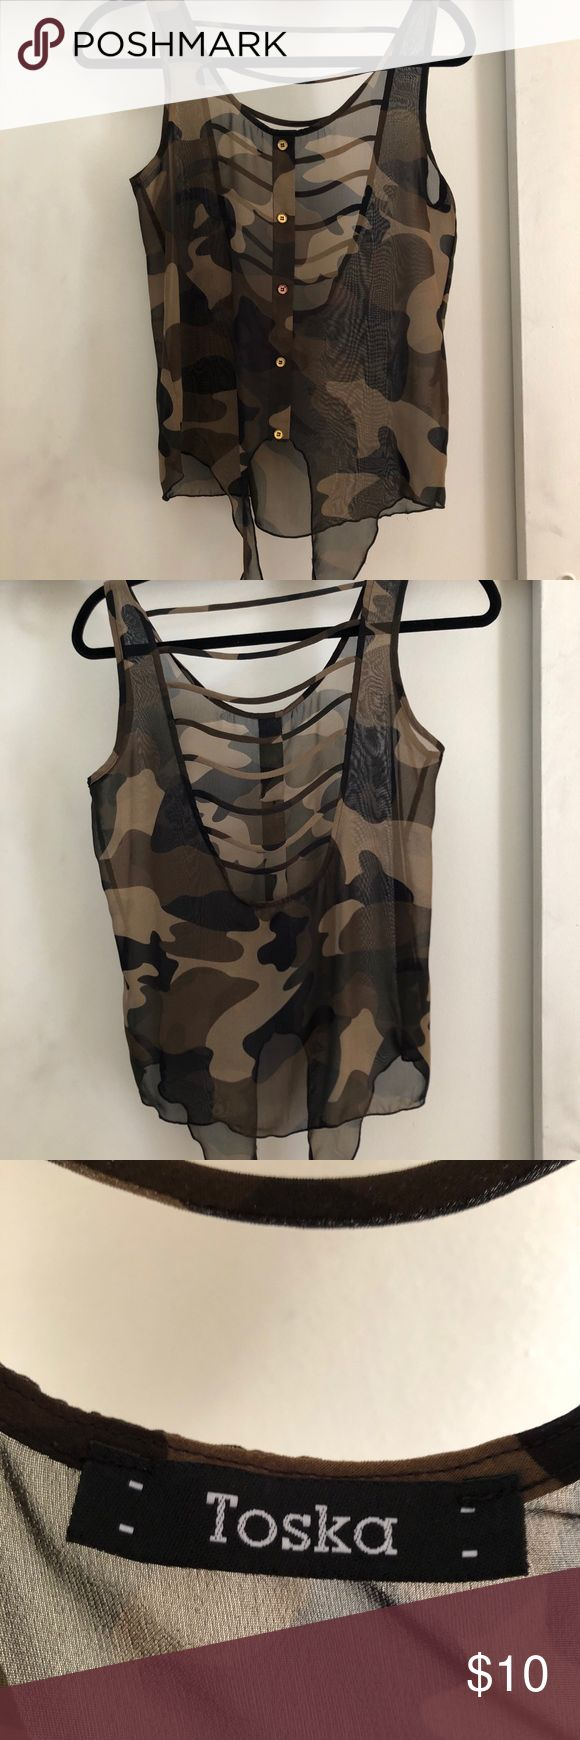 Sheer camo tank top Such a cute top! Ties in front and has an open back with slats. It doesn't have a size tag, but I would say it fits like a small. Maybe a medium. Only worn twice! OPEN TO OFFERS 😊 Toska Tops Tank Tops